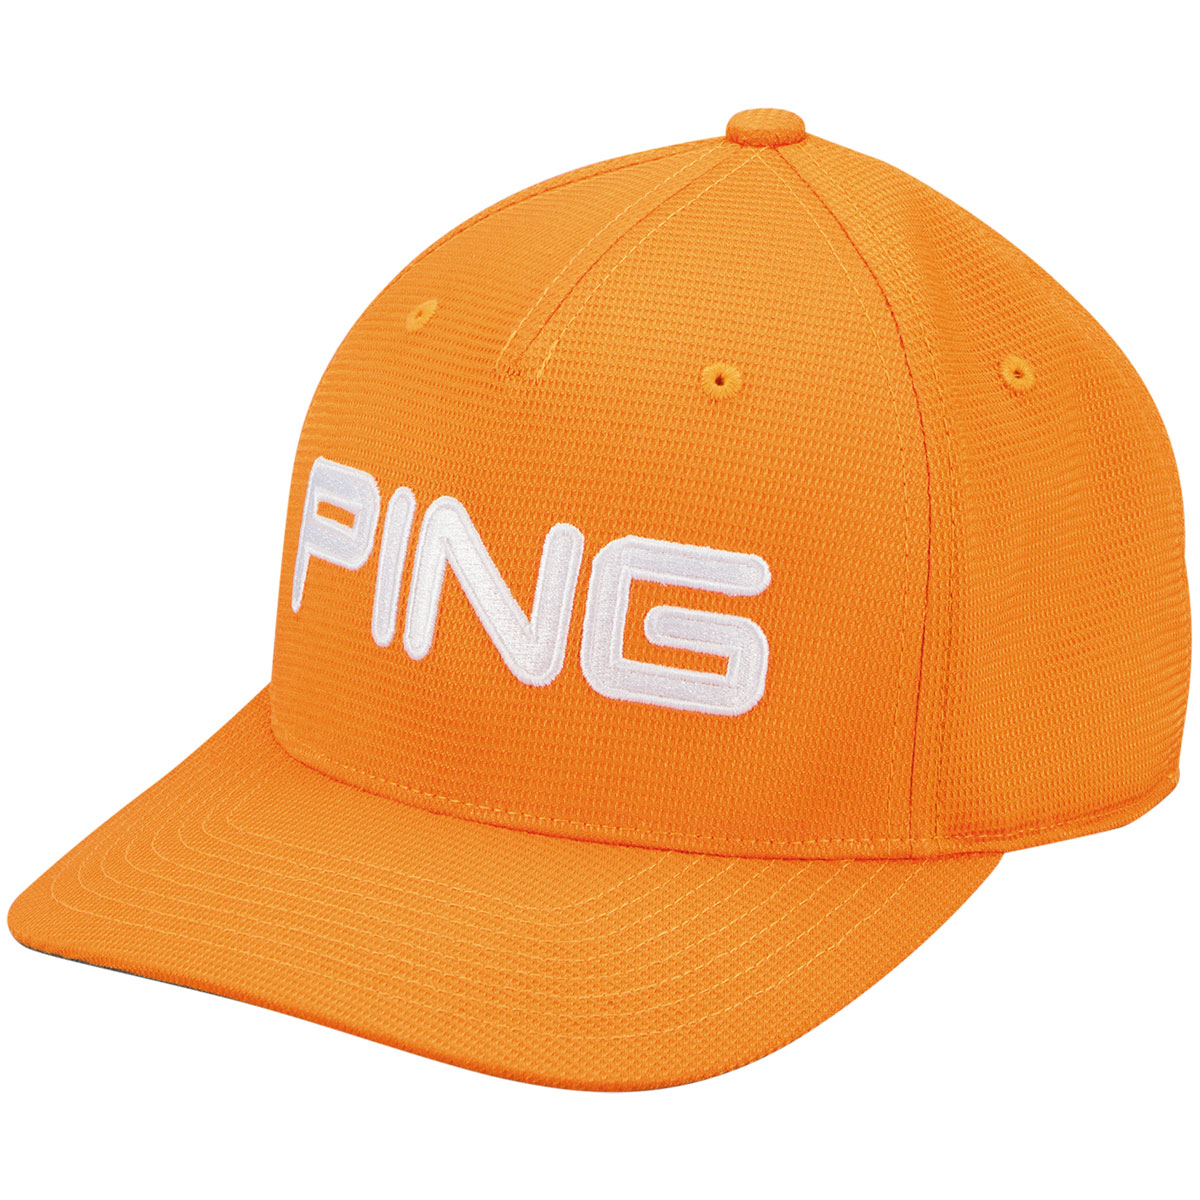 Ping 2015 Classic Structured Golf Hat NEW